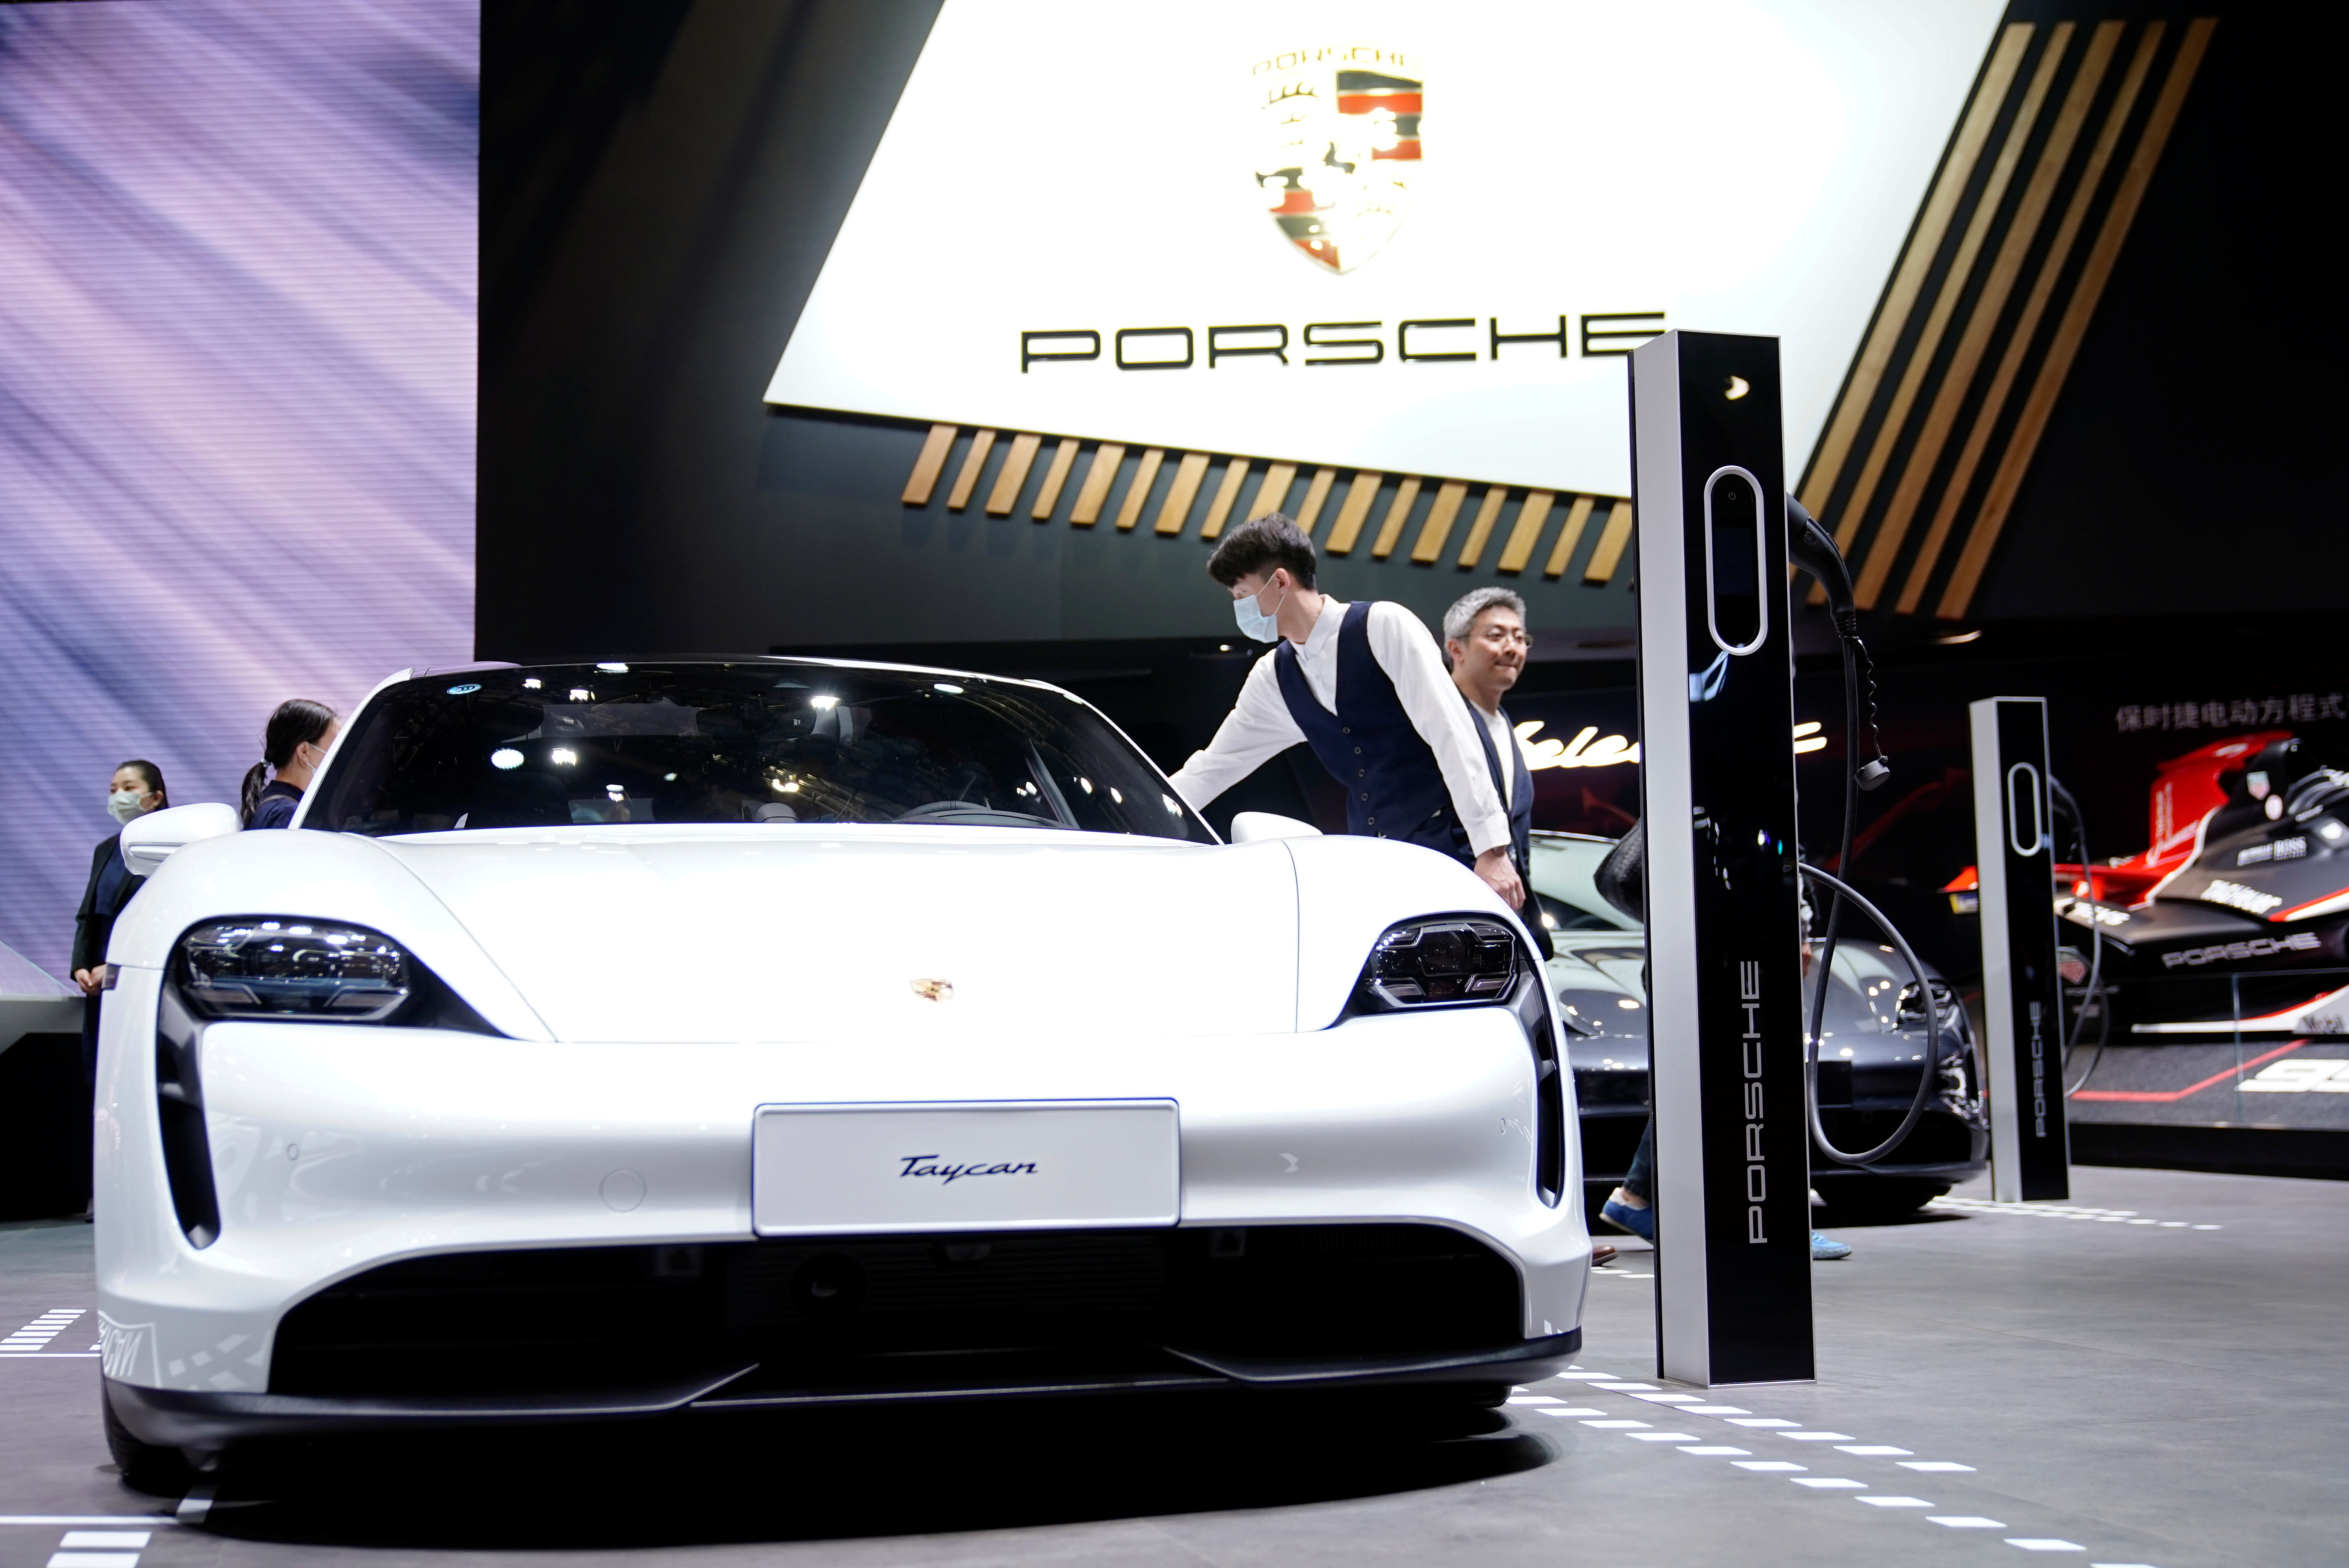 A Porsche Taycan electric vehicle (EV) is seen displayed during a media day for the Auto Shanghai show in Shanghai, China April 20, 2021. REUTERS/Aly Song